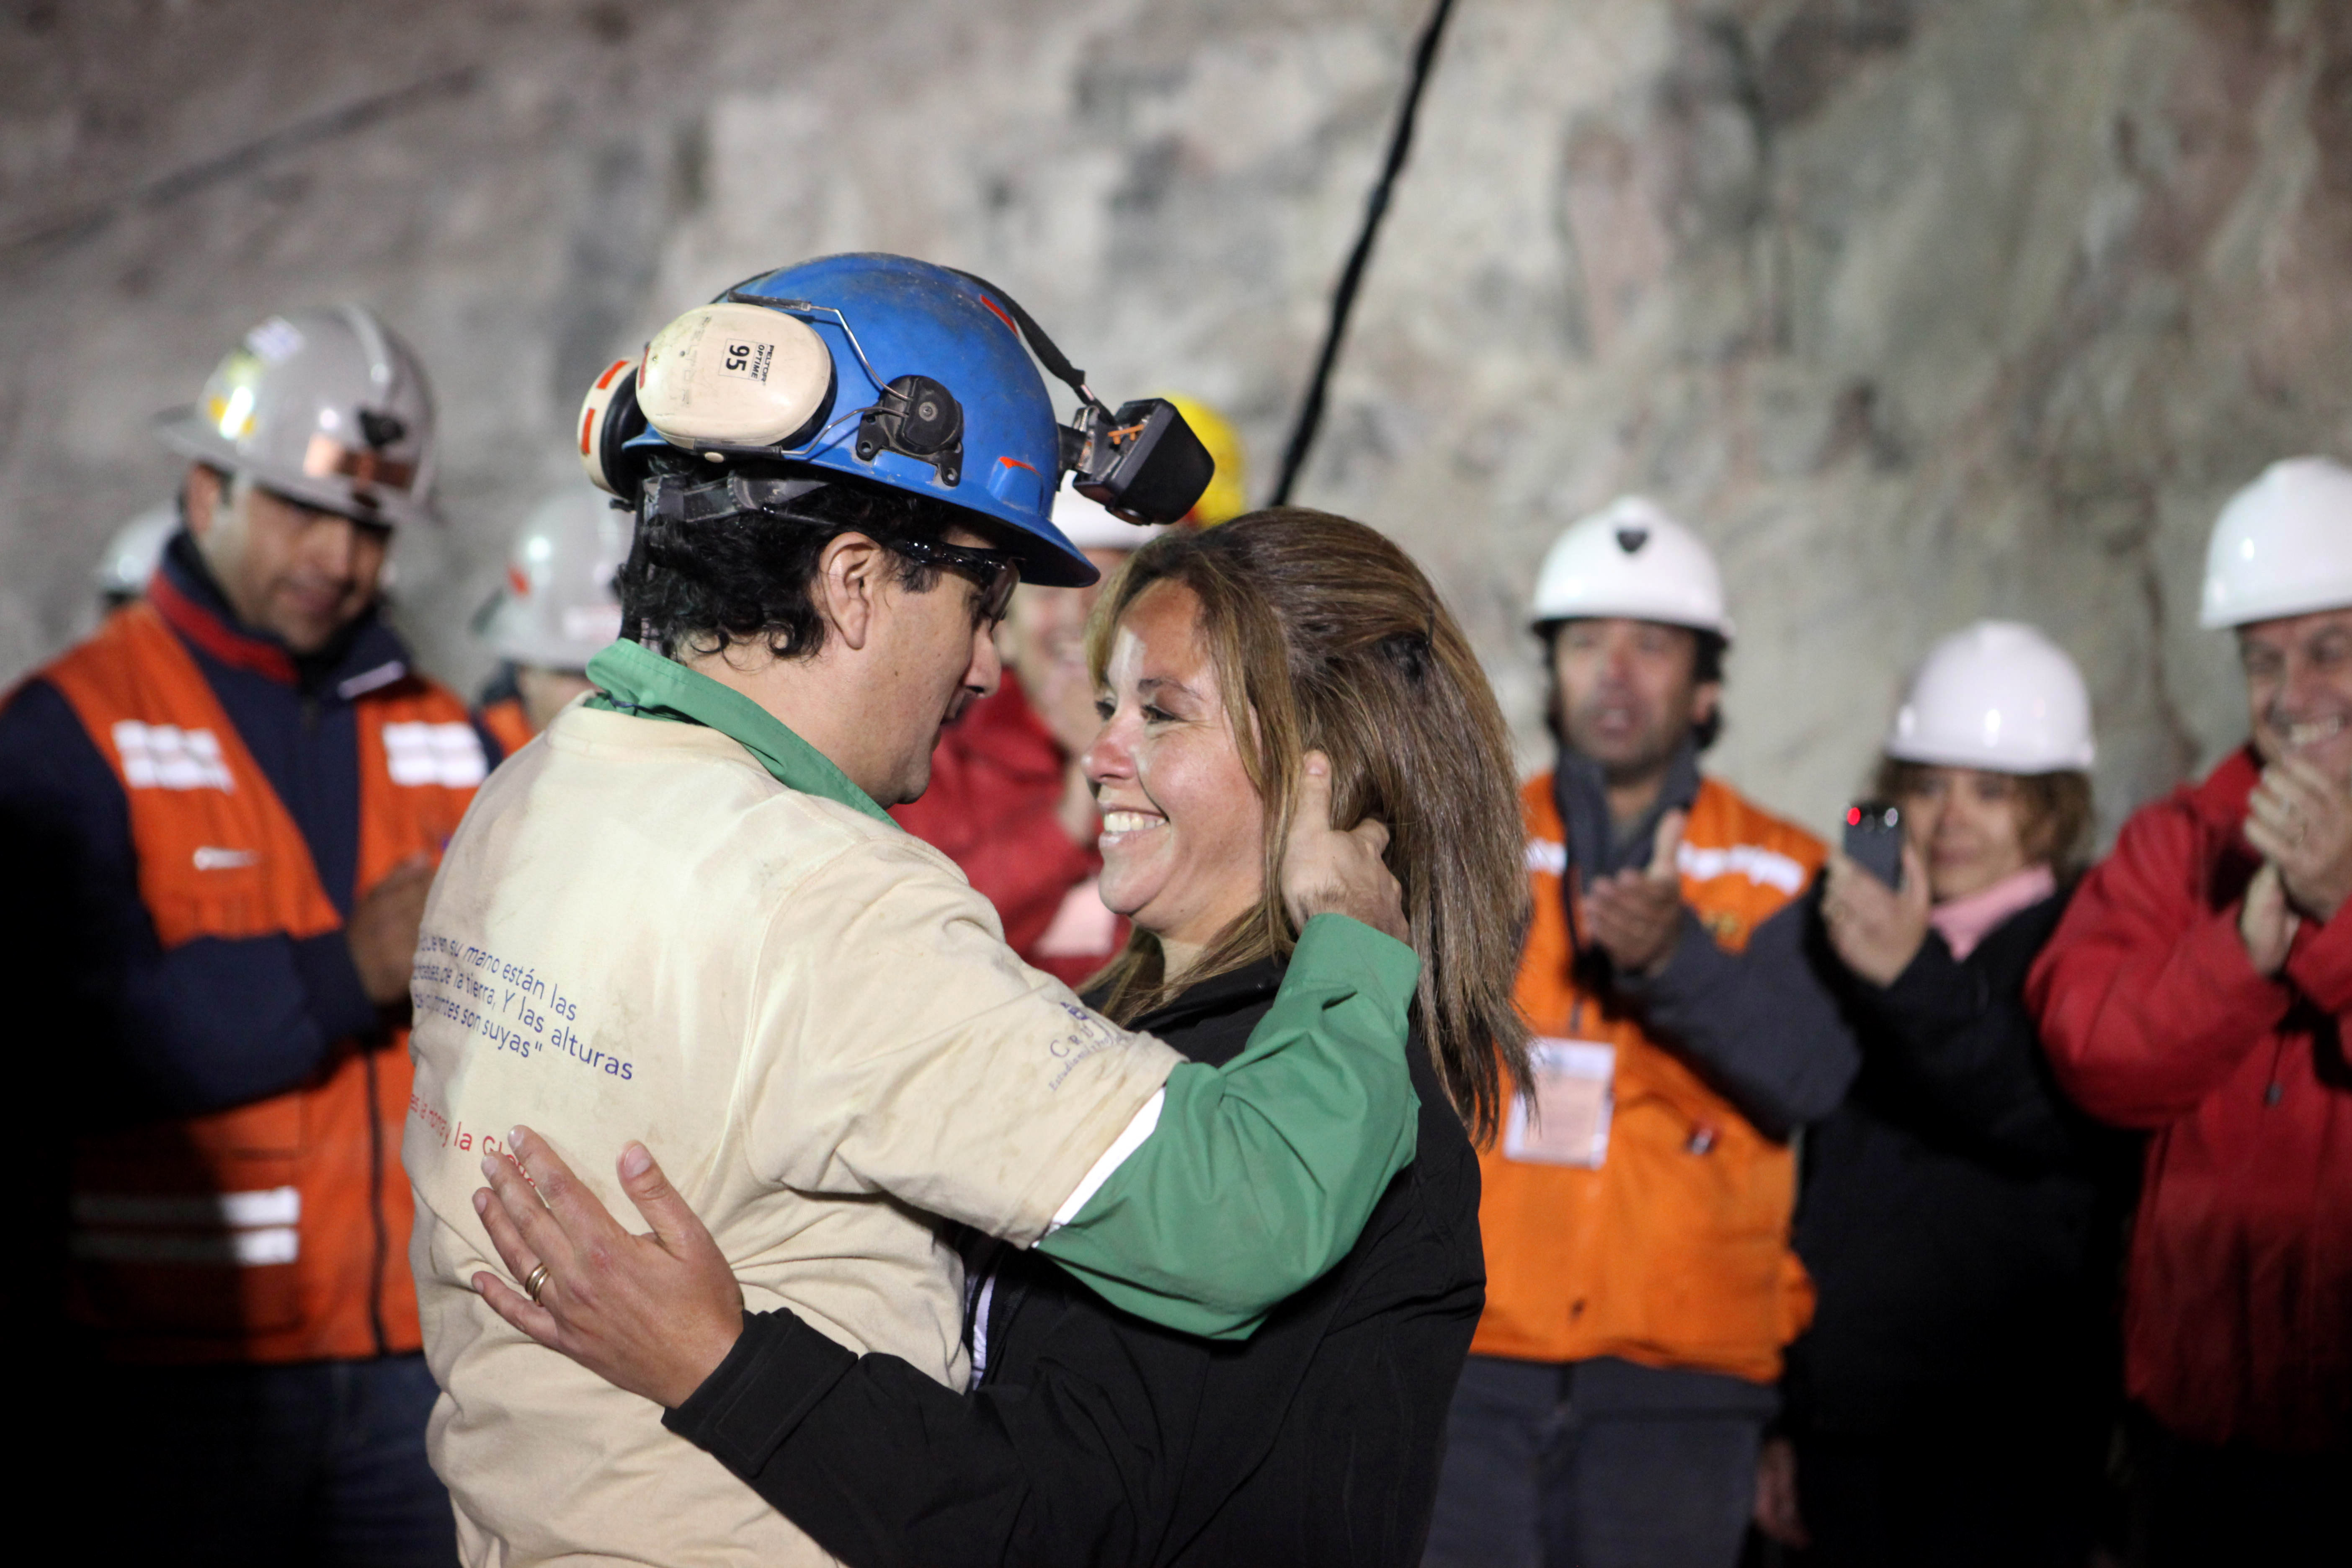 the san jose mine collapse in chile Mario sepulveda - nicknamed super mario by fellow captive miners for his indomitable spirit - was among the 33 stuck 2,300ft underground after a mine collapse in san jose, chile in 2010 afp or.